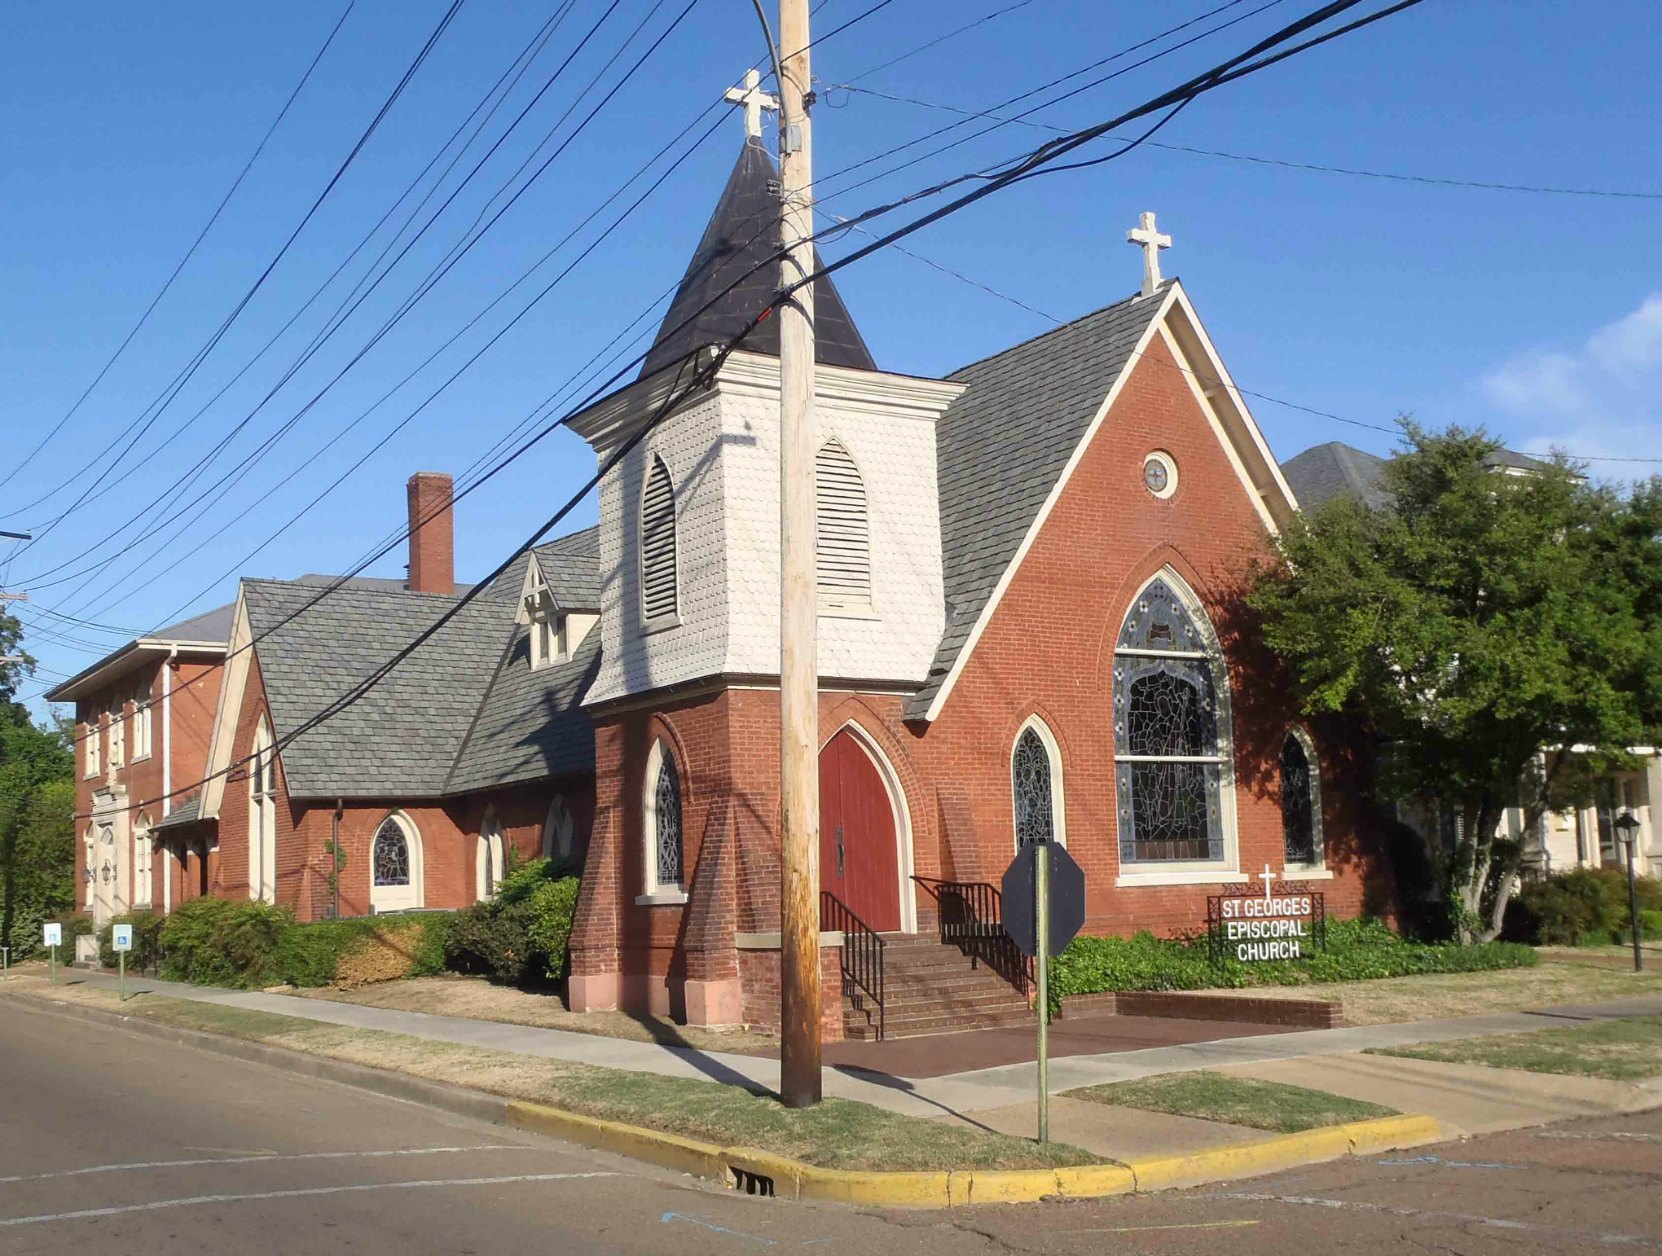 St. George's Episcopal Church, Clarksdale, Mississippi. Tennessee Williams' grandfather lived here when he was Rector of this church.